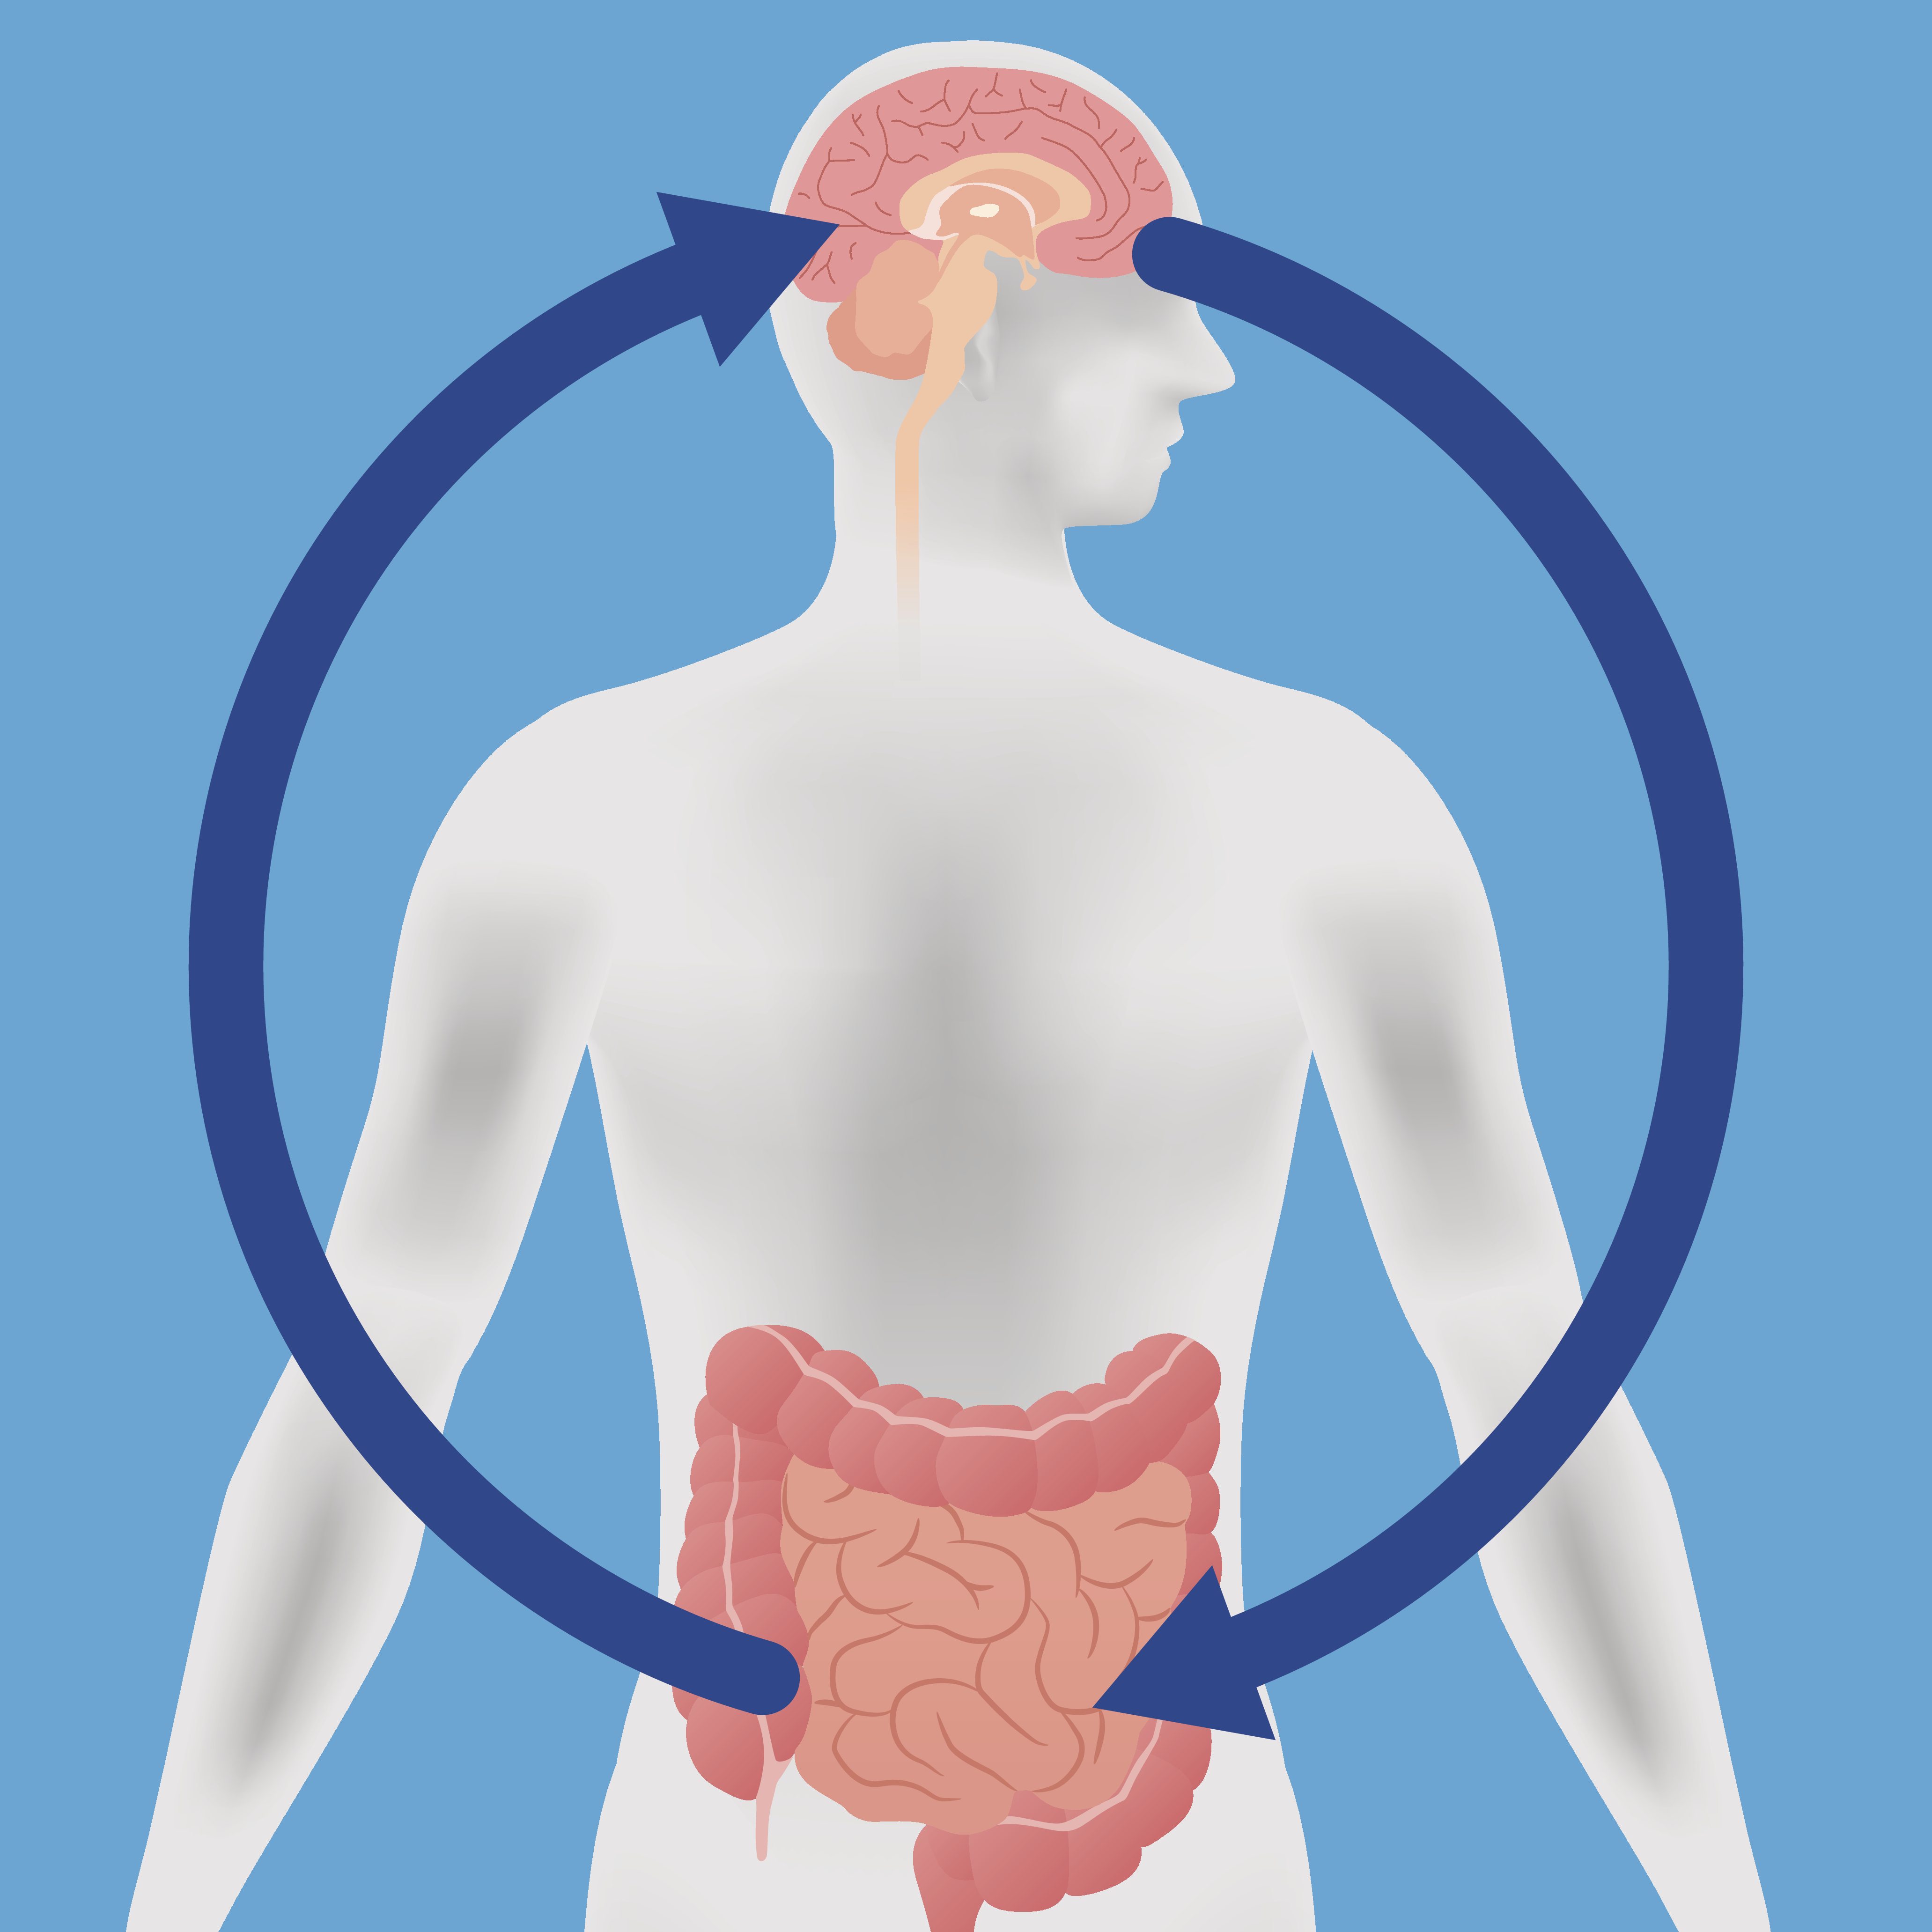 cartoon image of brain and gut in body; arrow from brain to gut and gut to brain